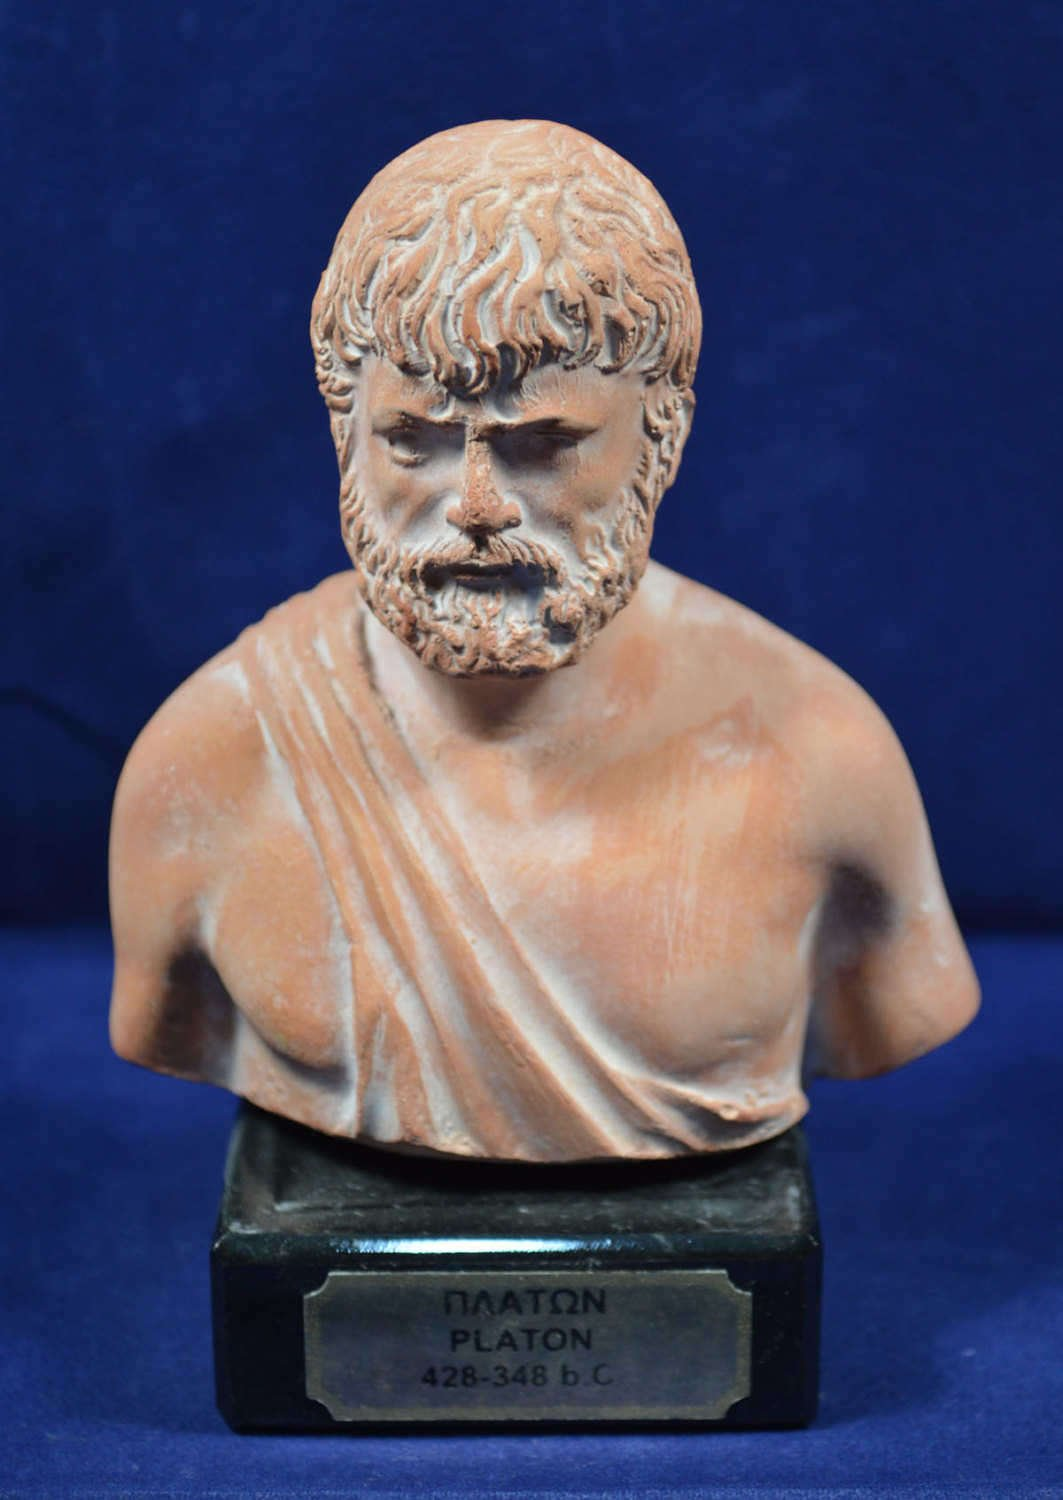 Plato Sculpture Bust Ancient Greek Philosopher Artifact Estia Creations